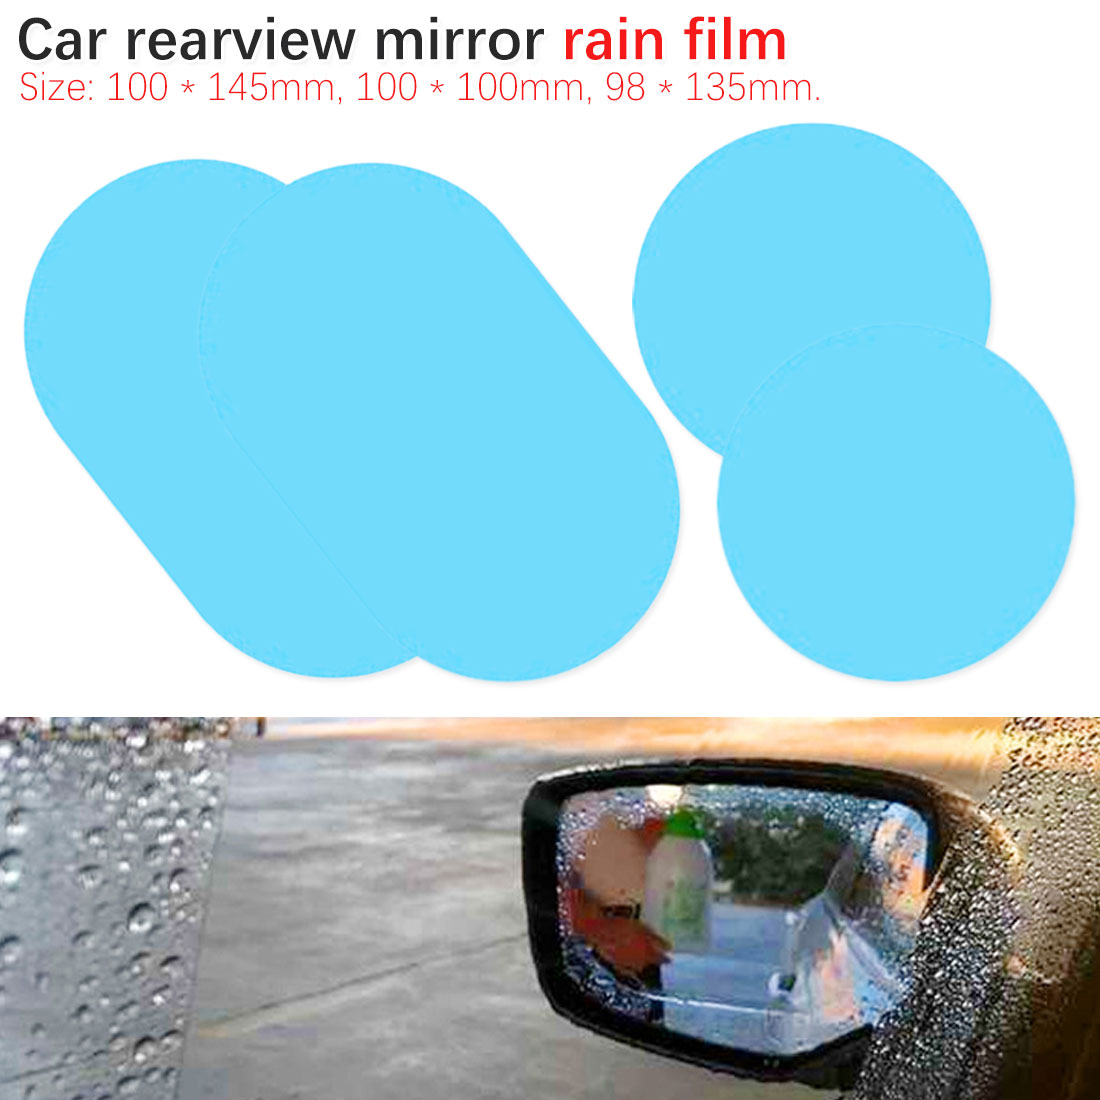 2 Pcs/Set Car Rearview Mirror Rain Film Side Window HD Flooding Film Waterproof Car Sticker Anti-fog Nano Waterproof Film